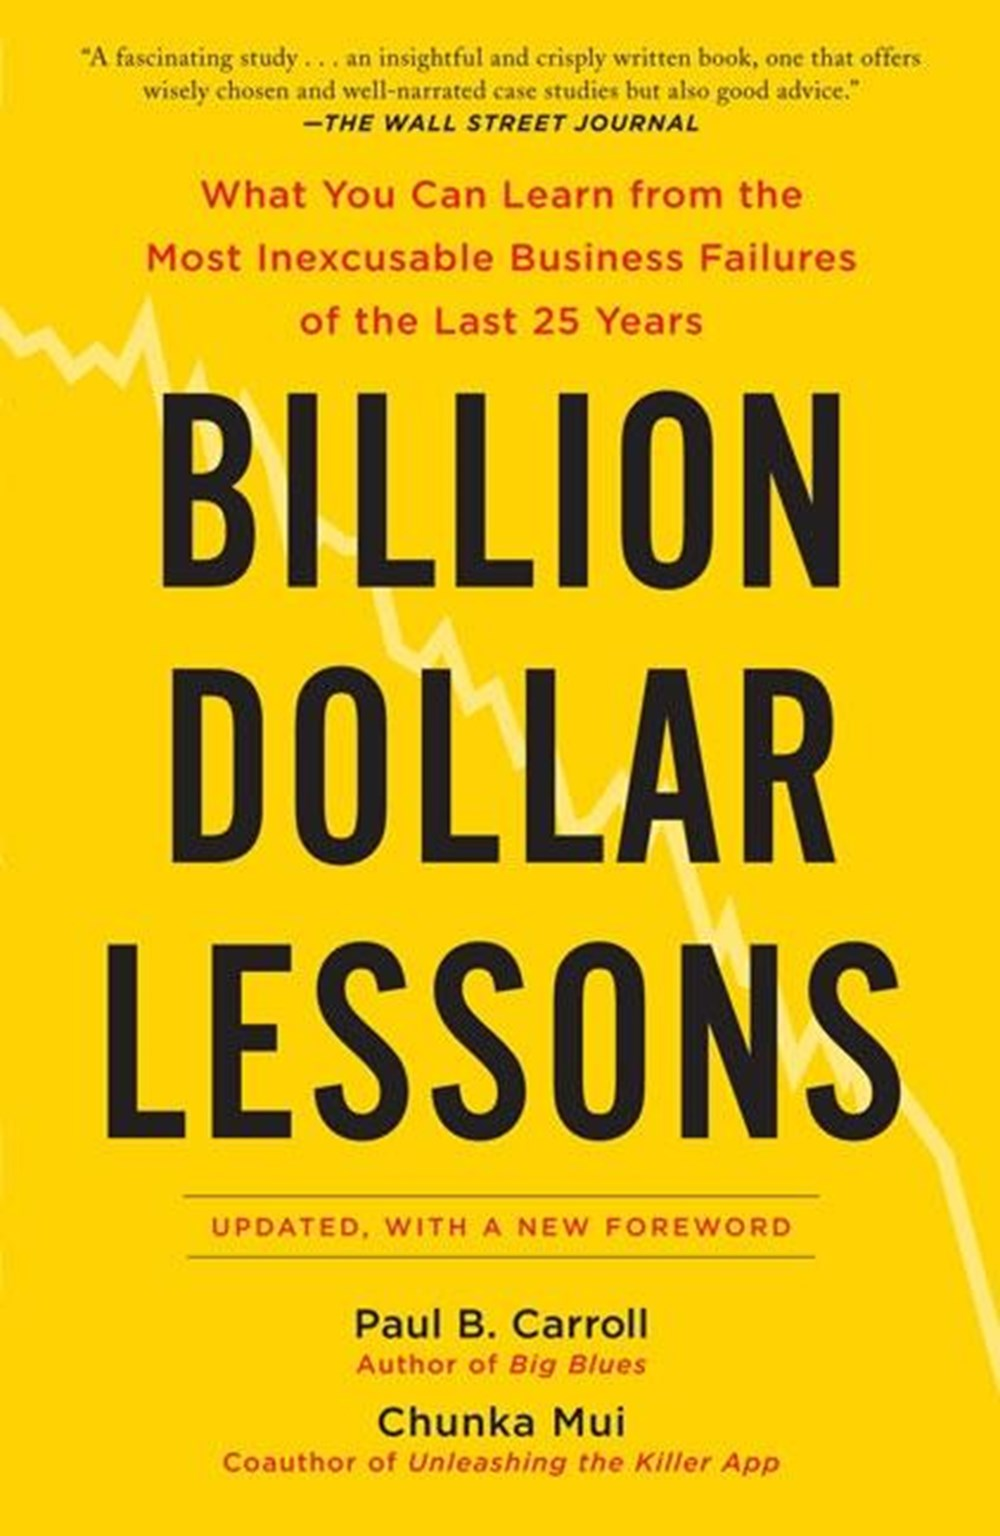 Billion Dollar Lessons What You Can Learn from the Most Inexcusable Business Failures of the Last 25